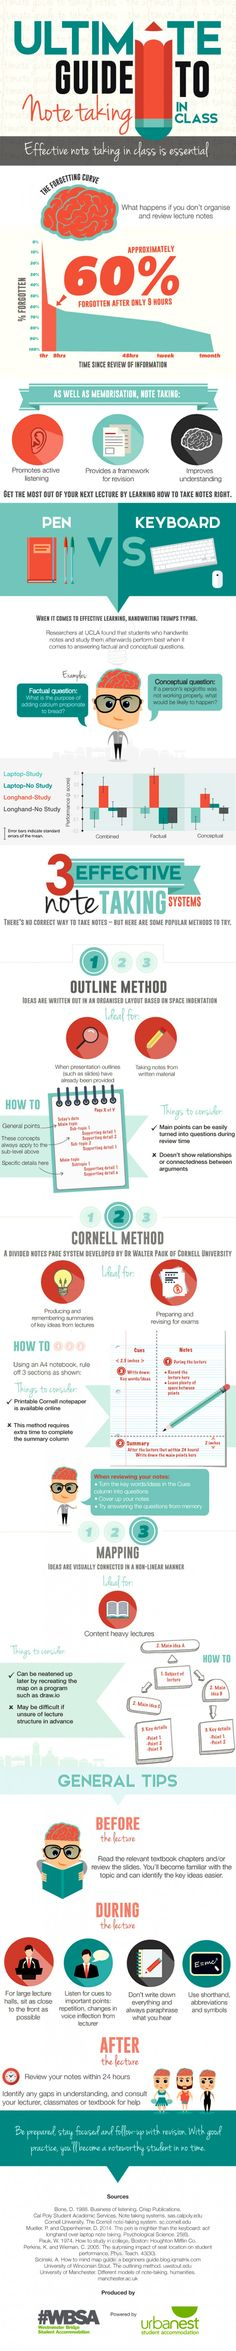 The Ultimate Guide To Taking Notes While You're In Class (infographic)